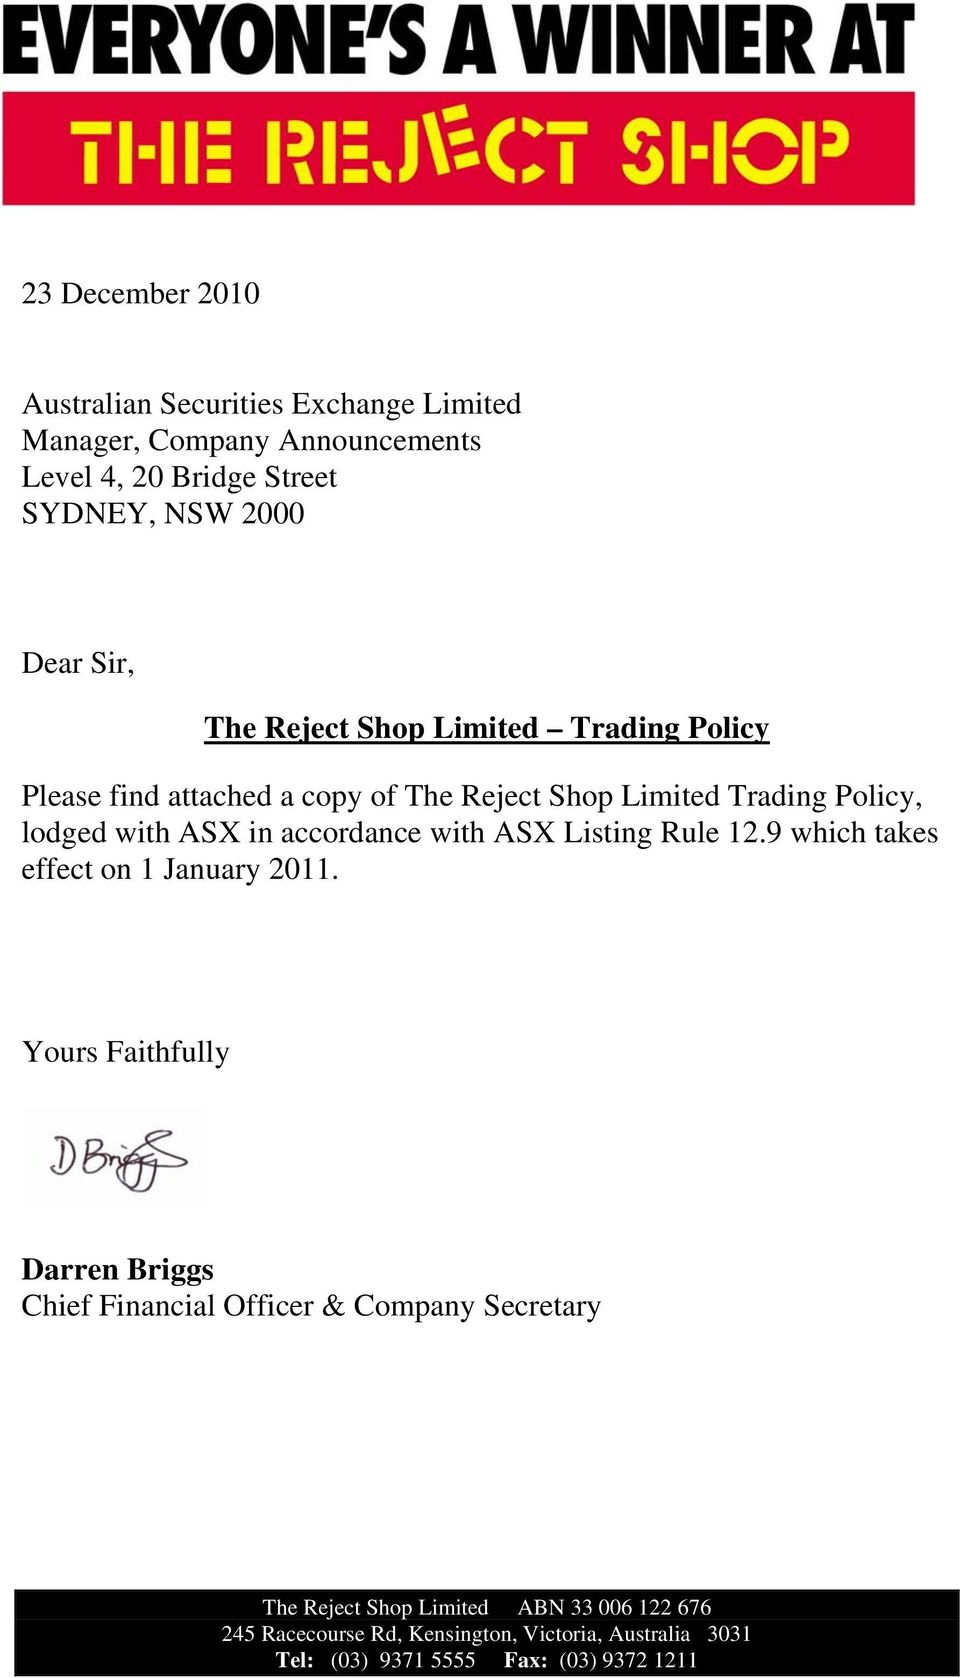 with ASX Listing Rule 12.9 which takes effect on 1 January 2011.